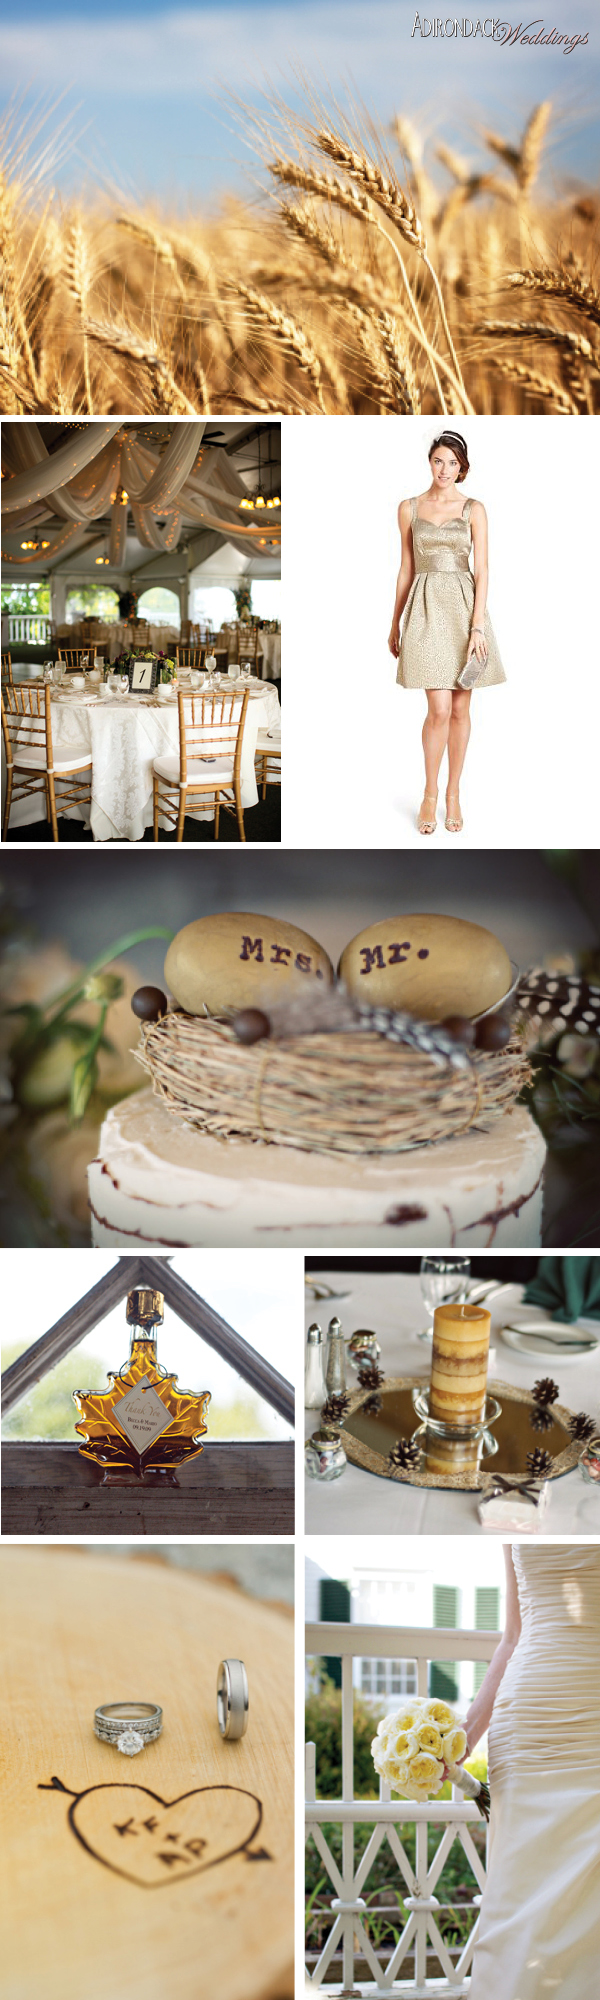 Gold Inspiration Board | Adirondack Weddings Magazine